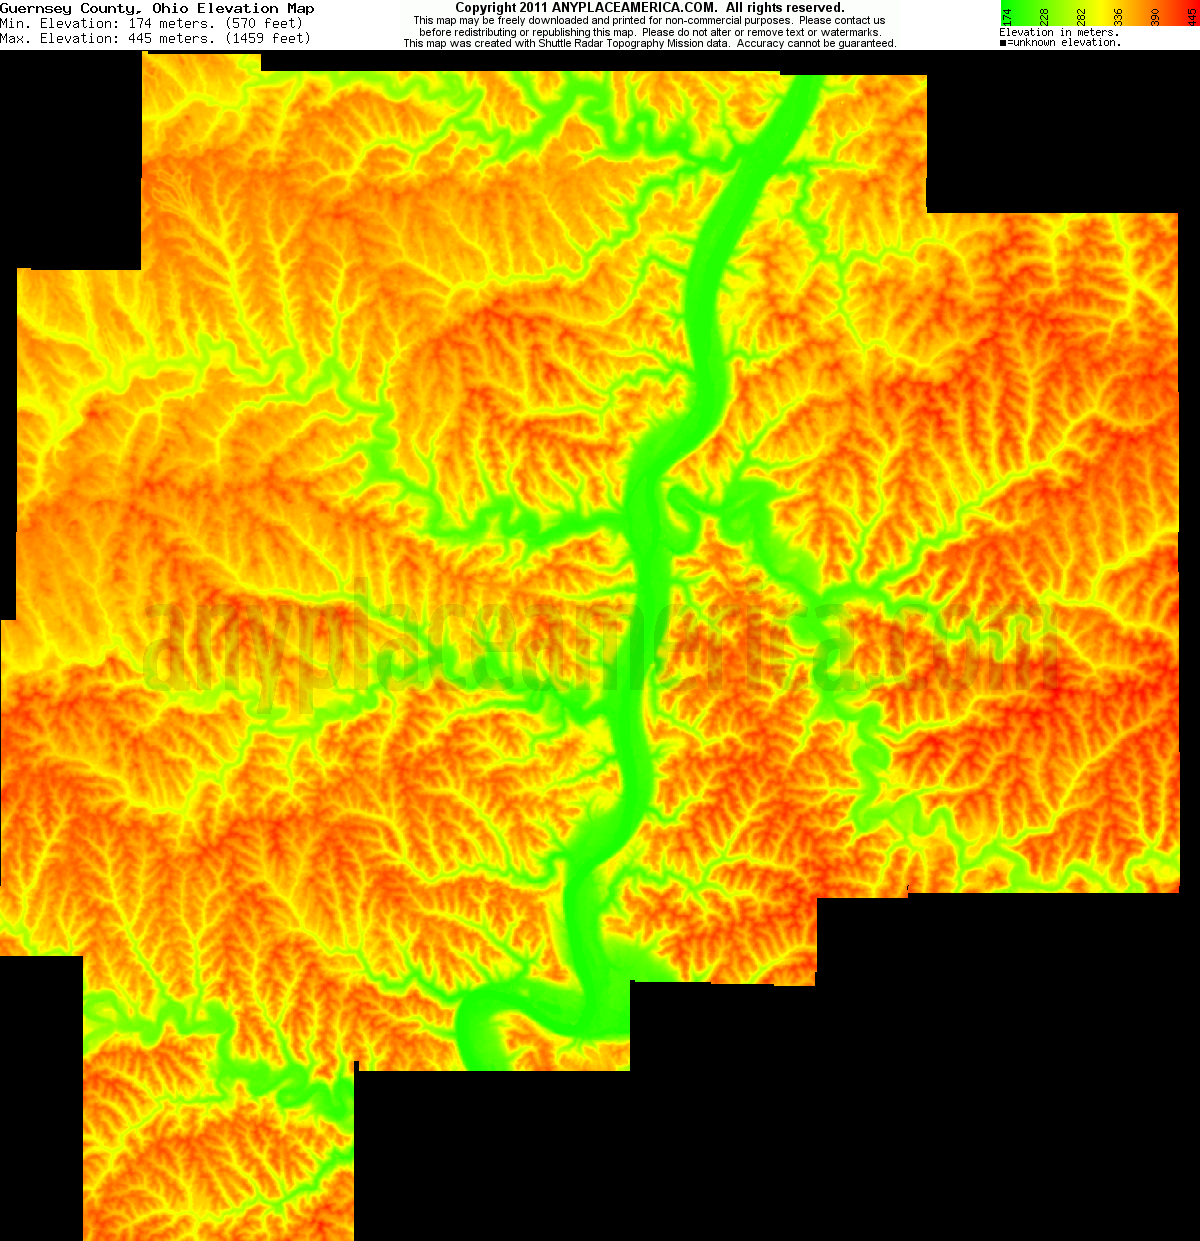 Free Guernsey County, Ohio Topo Maps & Elevations on